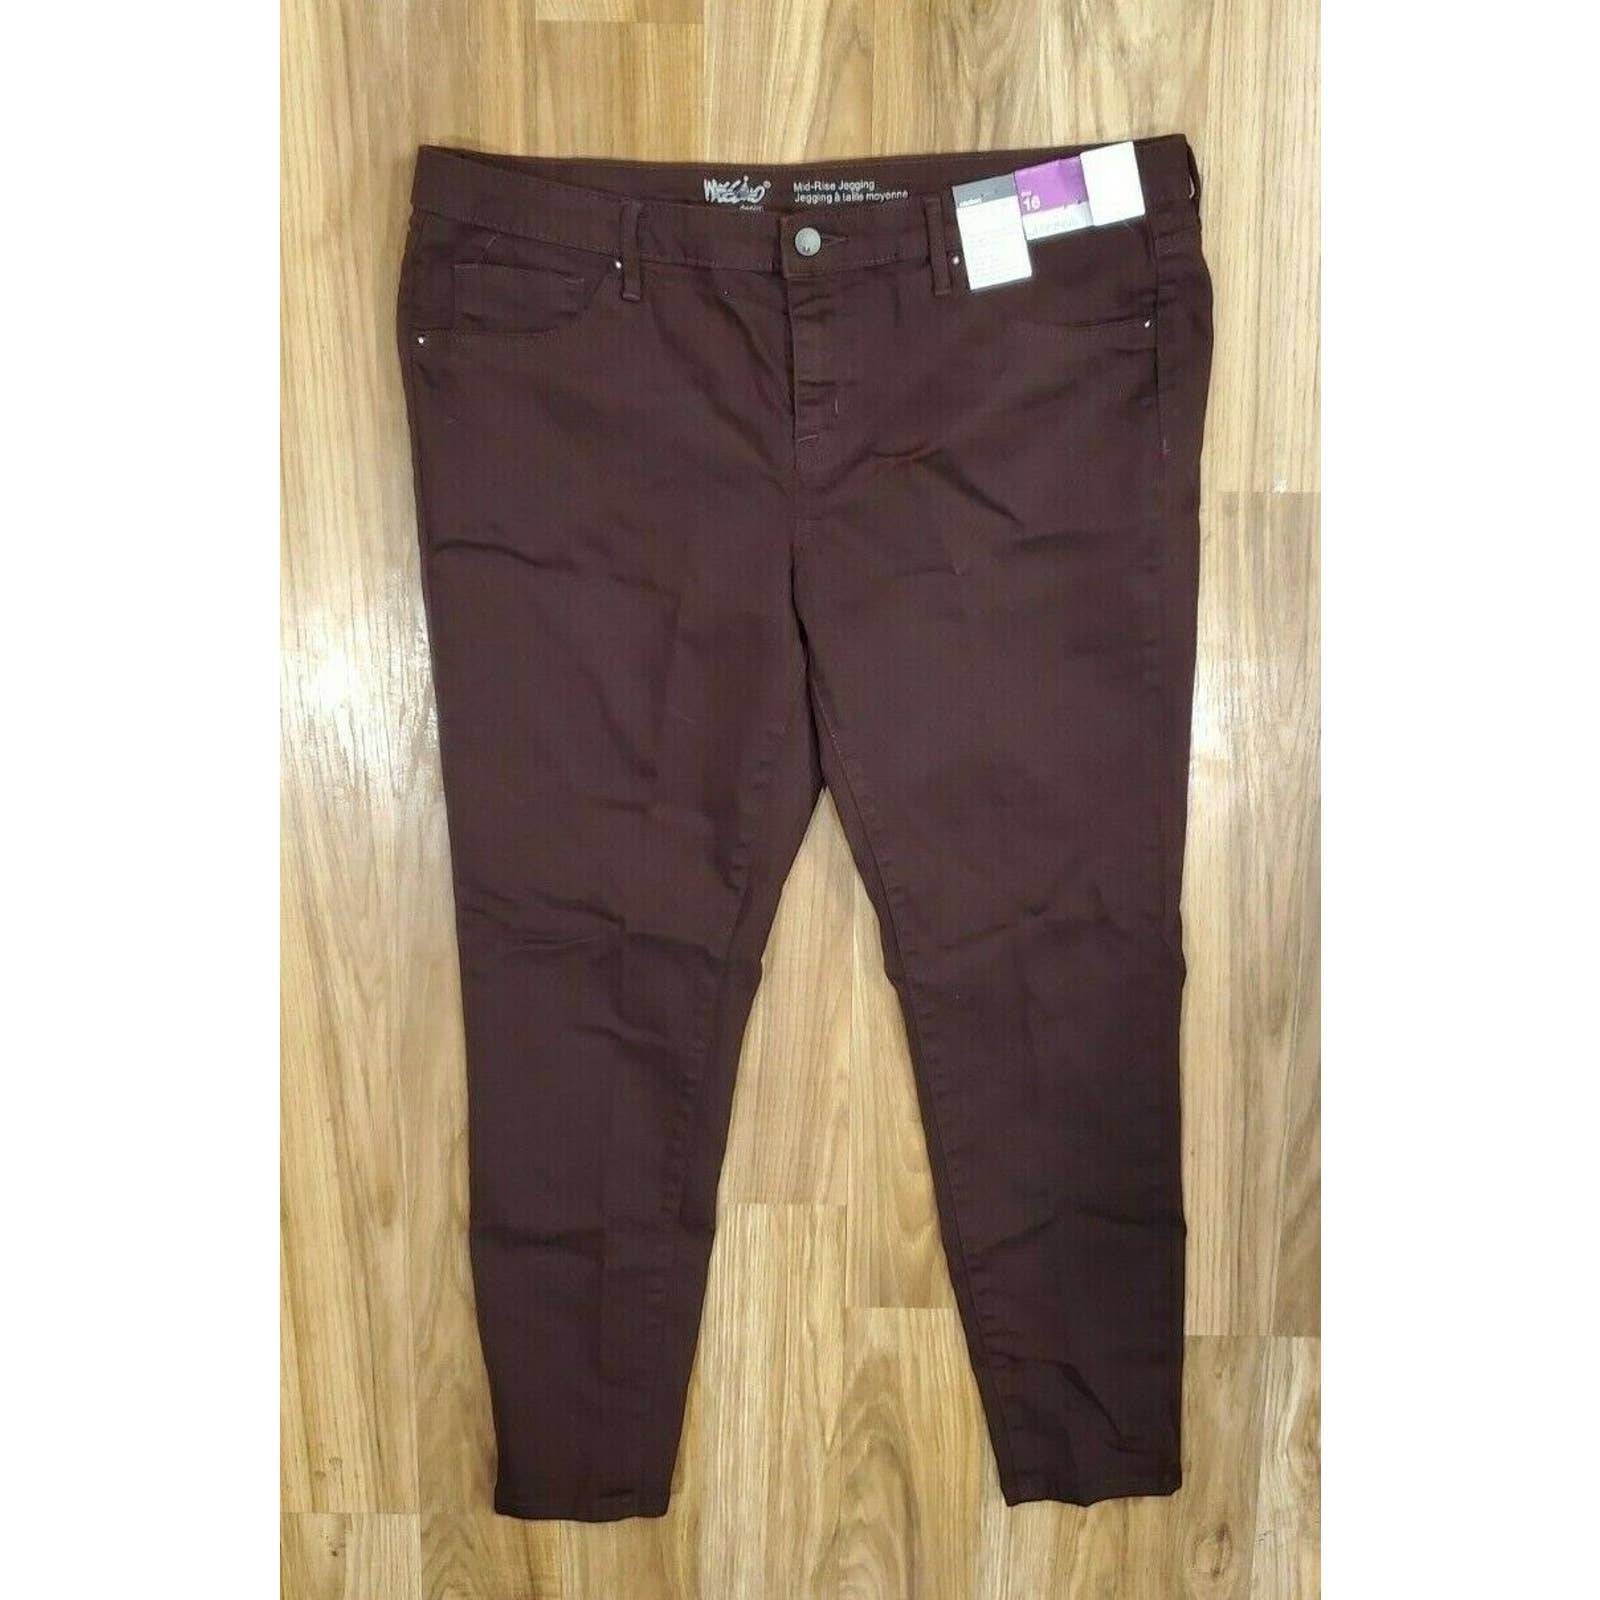 Mossimo Womens Jeggings Size 16 nwt